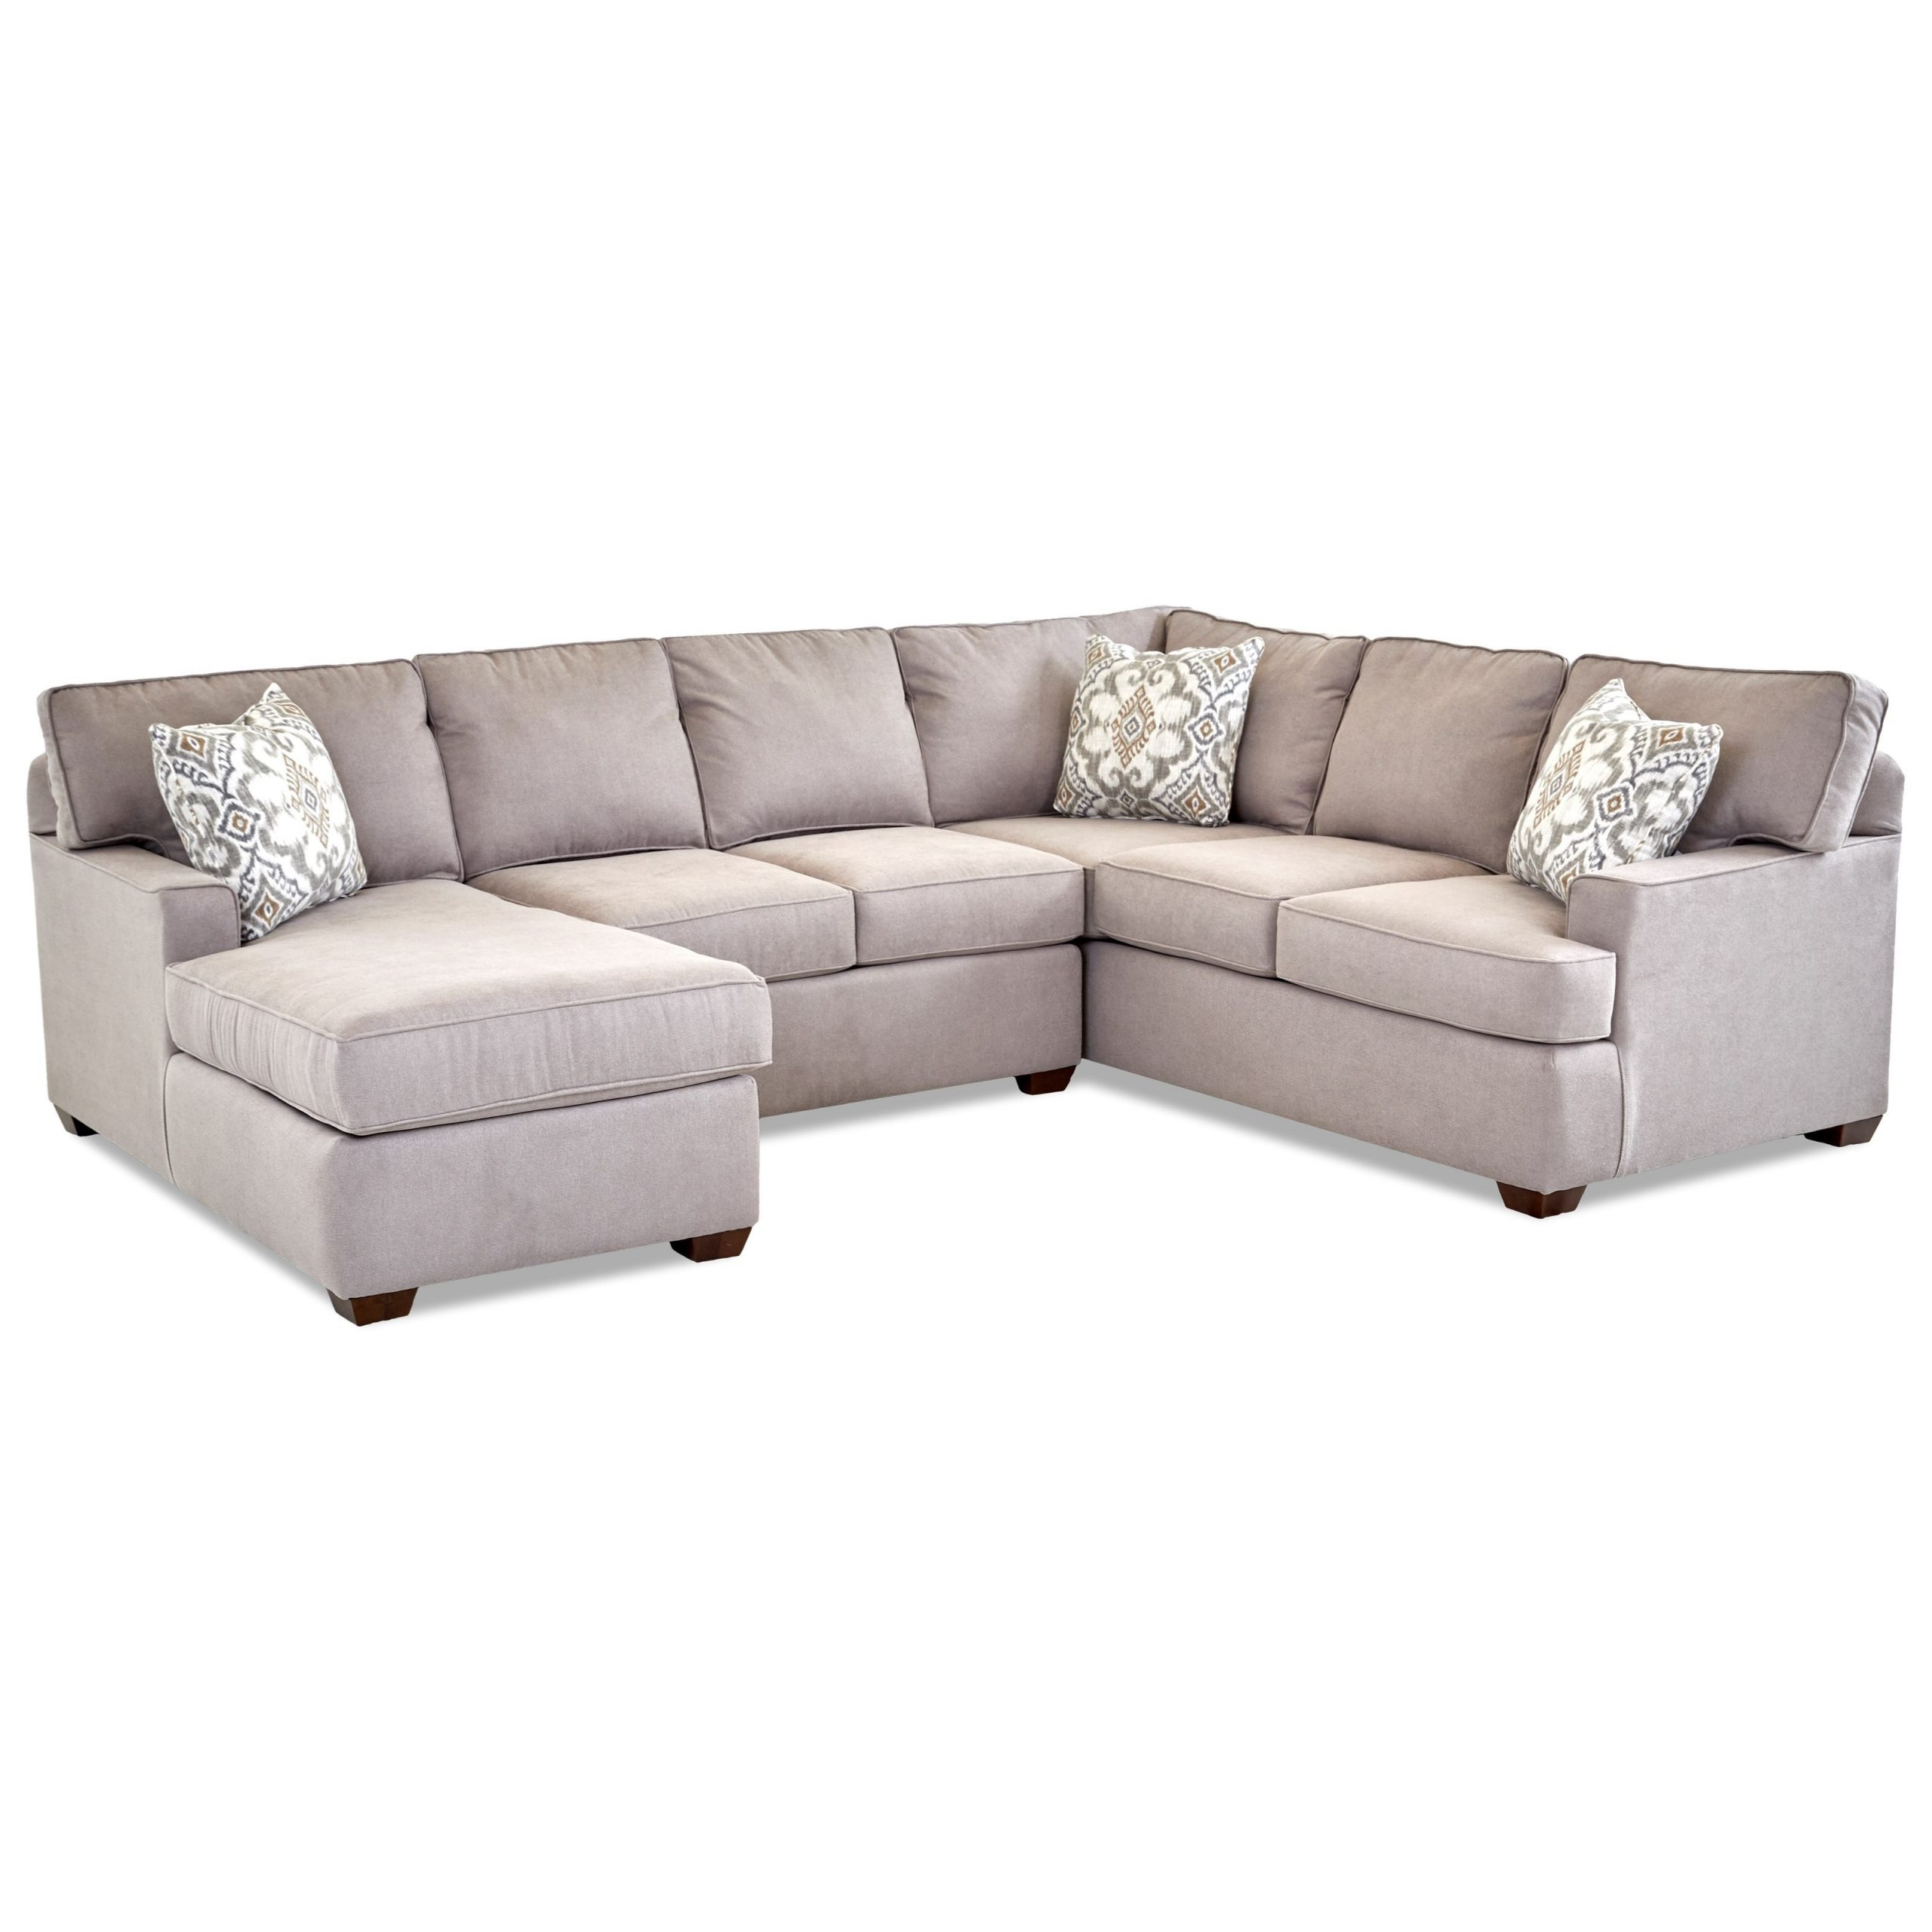 Klaussner Pantego 3 Piece Sectional Sofa With Raf Chaise In Famous 3pc Miles Leather Sectional Sofas With Chaise (View 1 of 20)